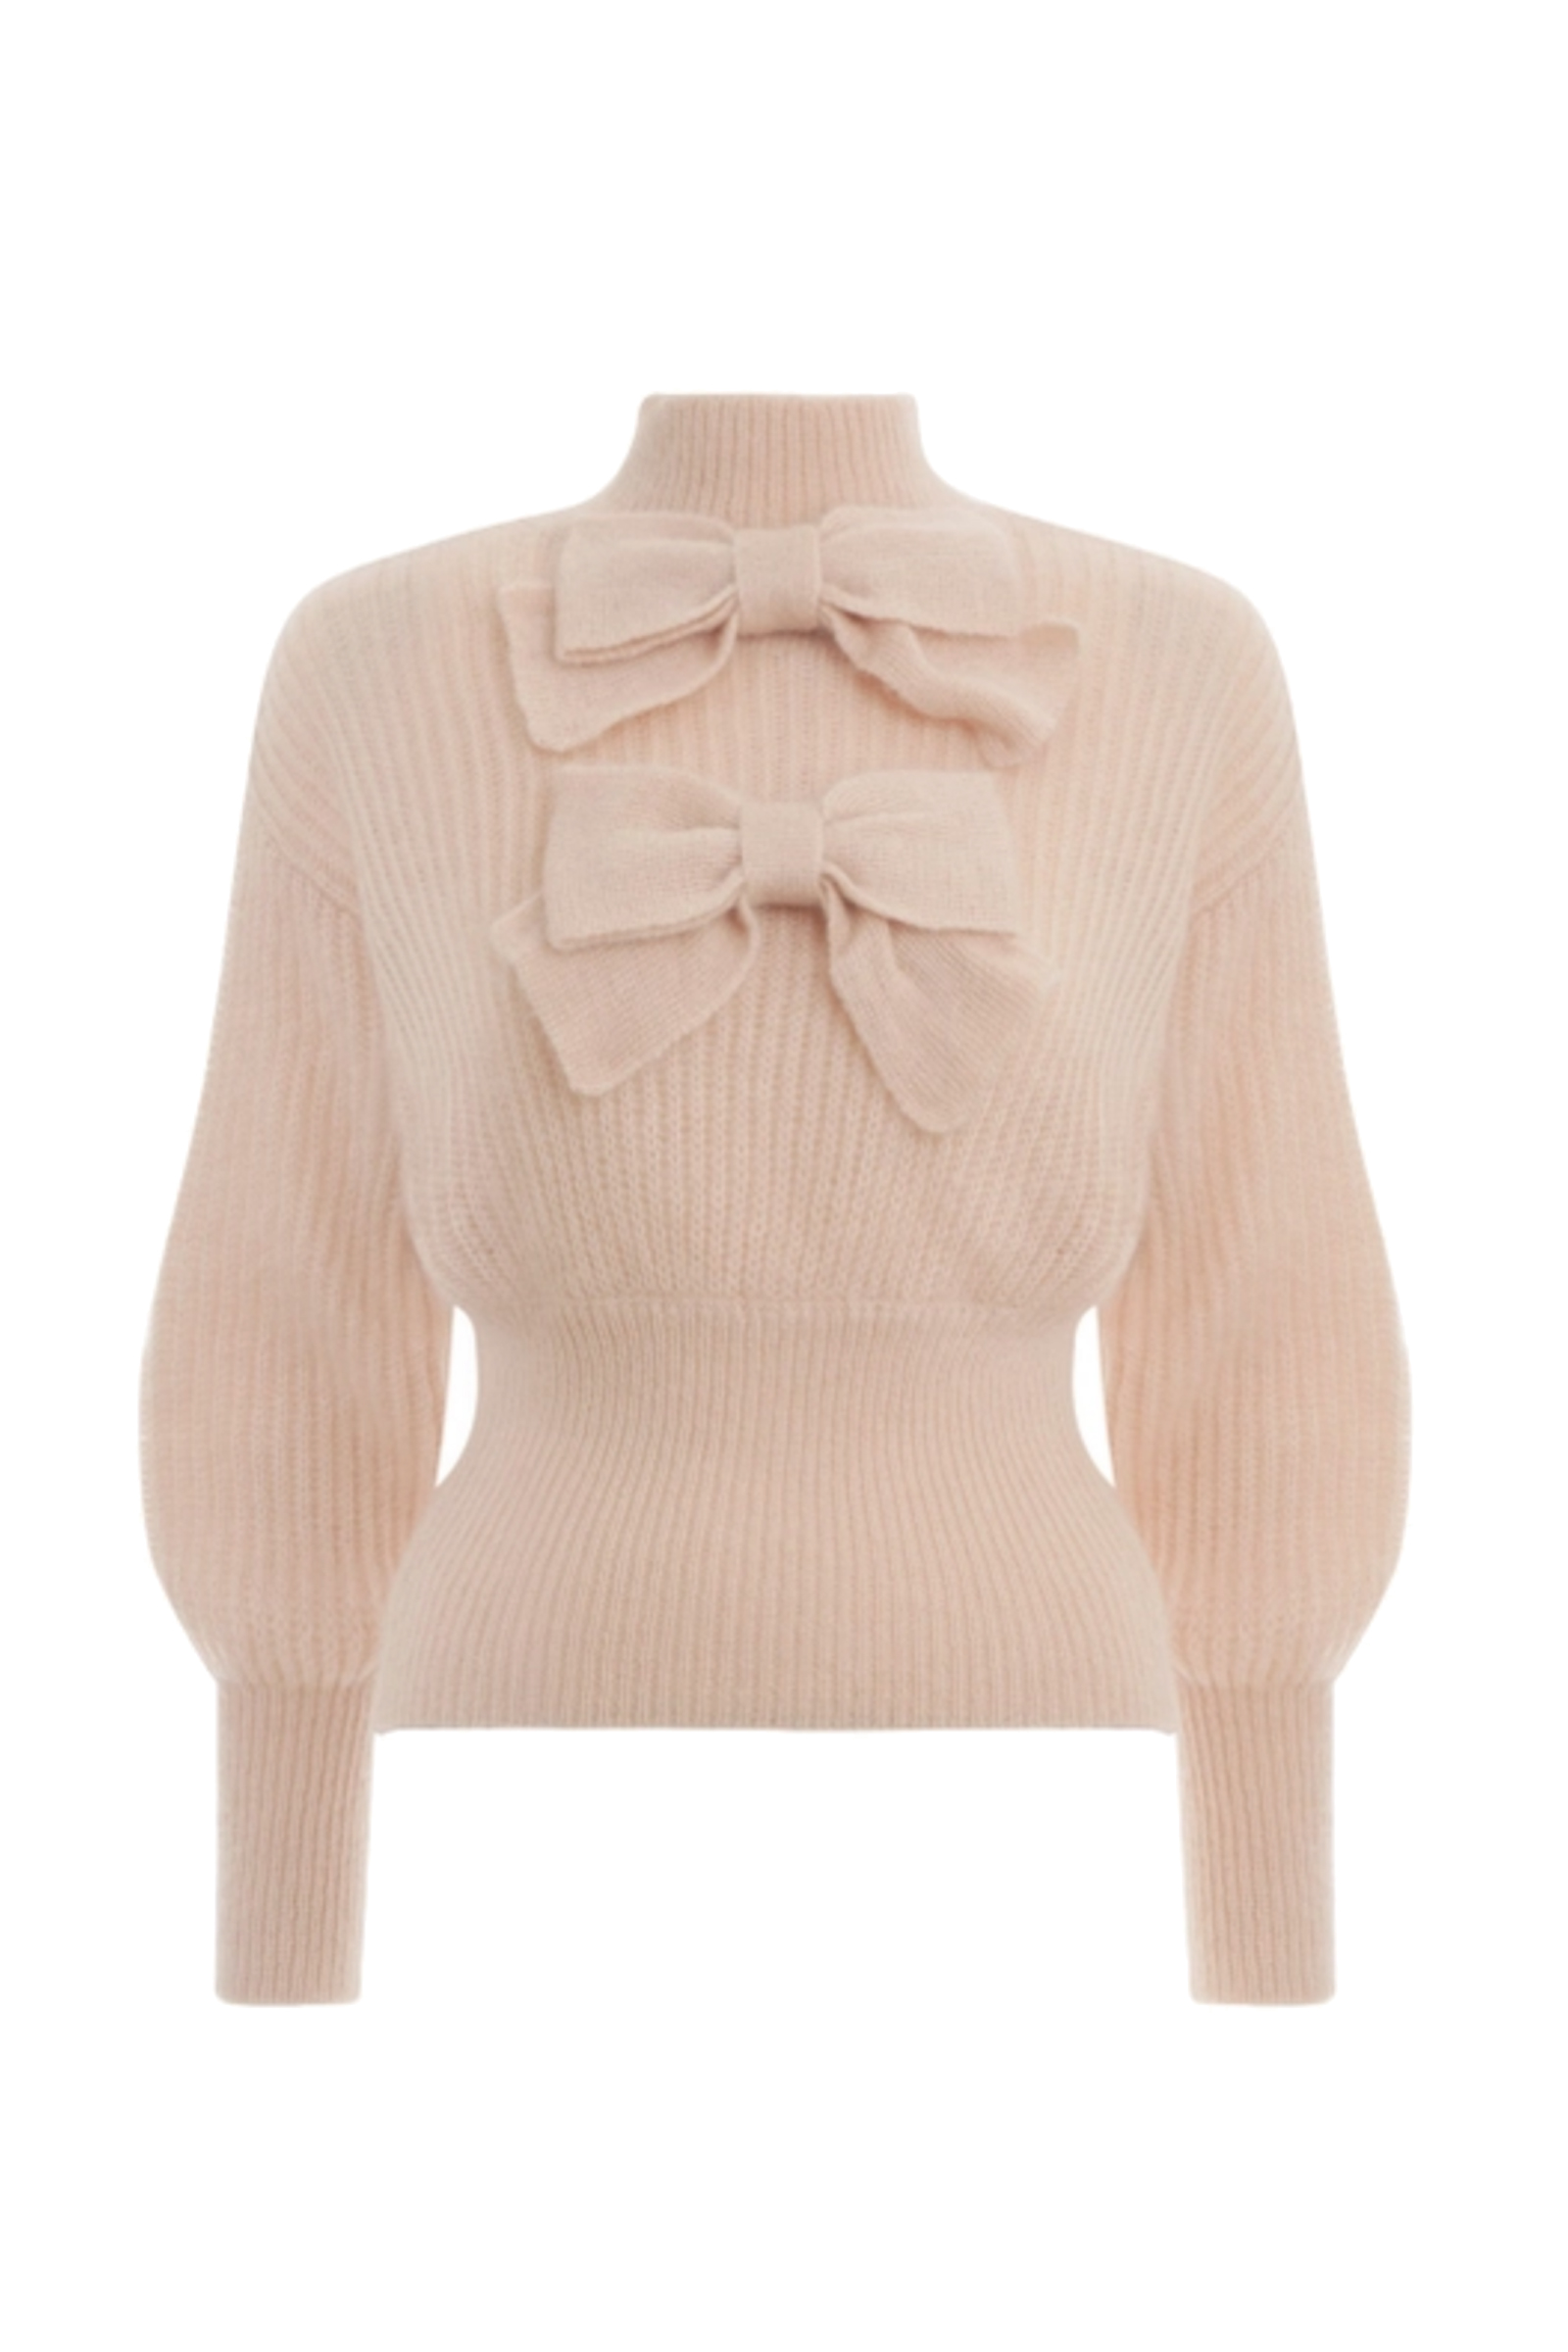 Zimmermann sweater